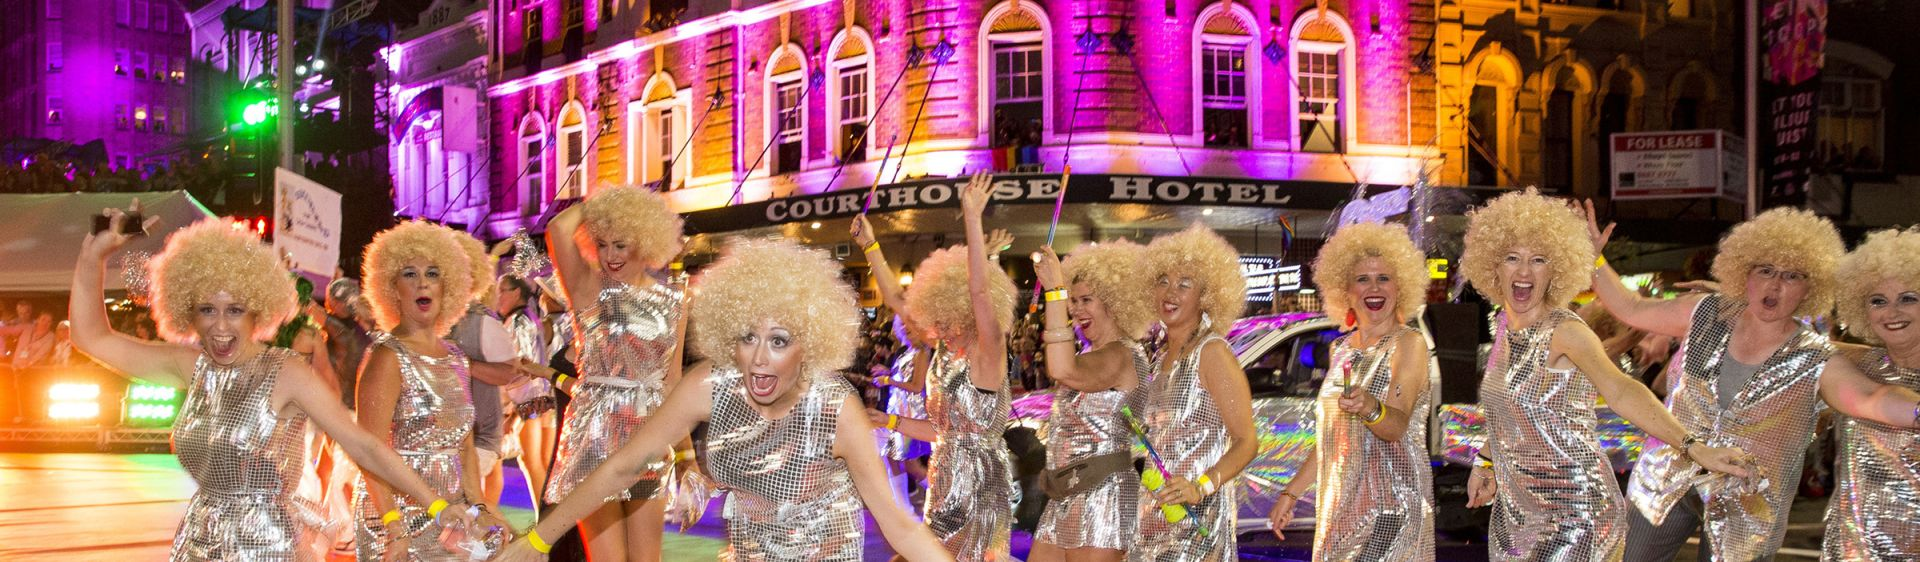 Sydney Gay and Lesbian Mardi Gras - Oxford Street Parade